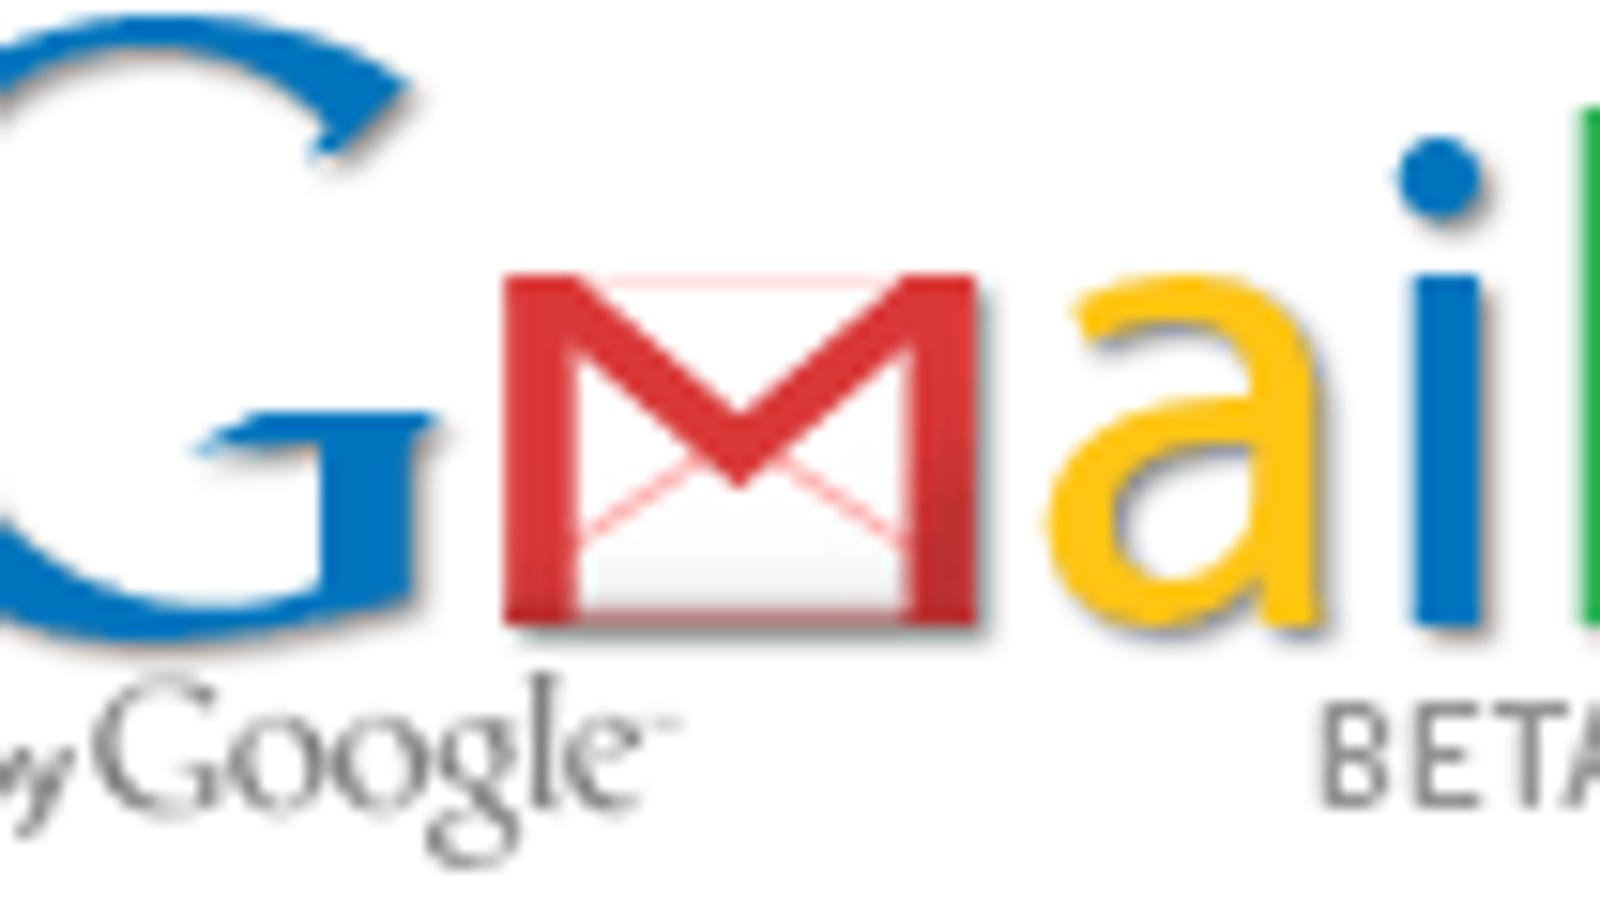 Reformat your Gmail address with dots